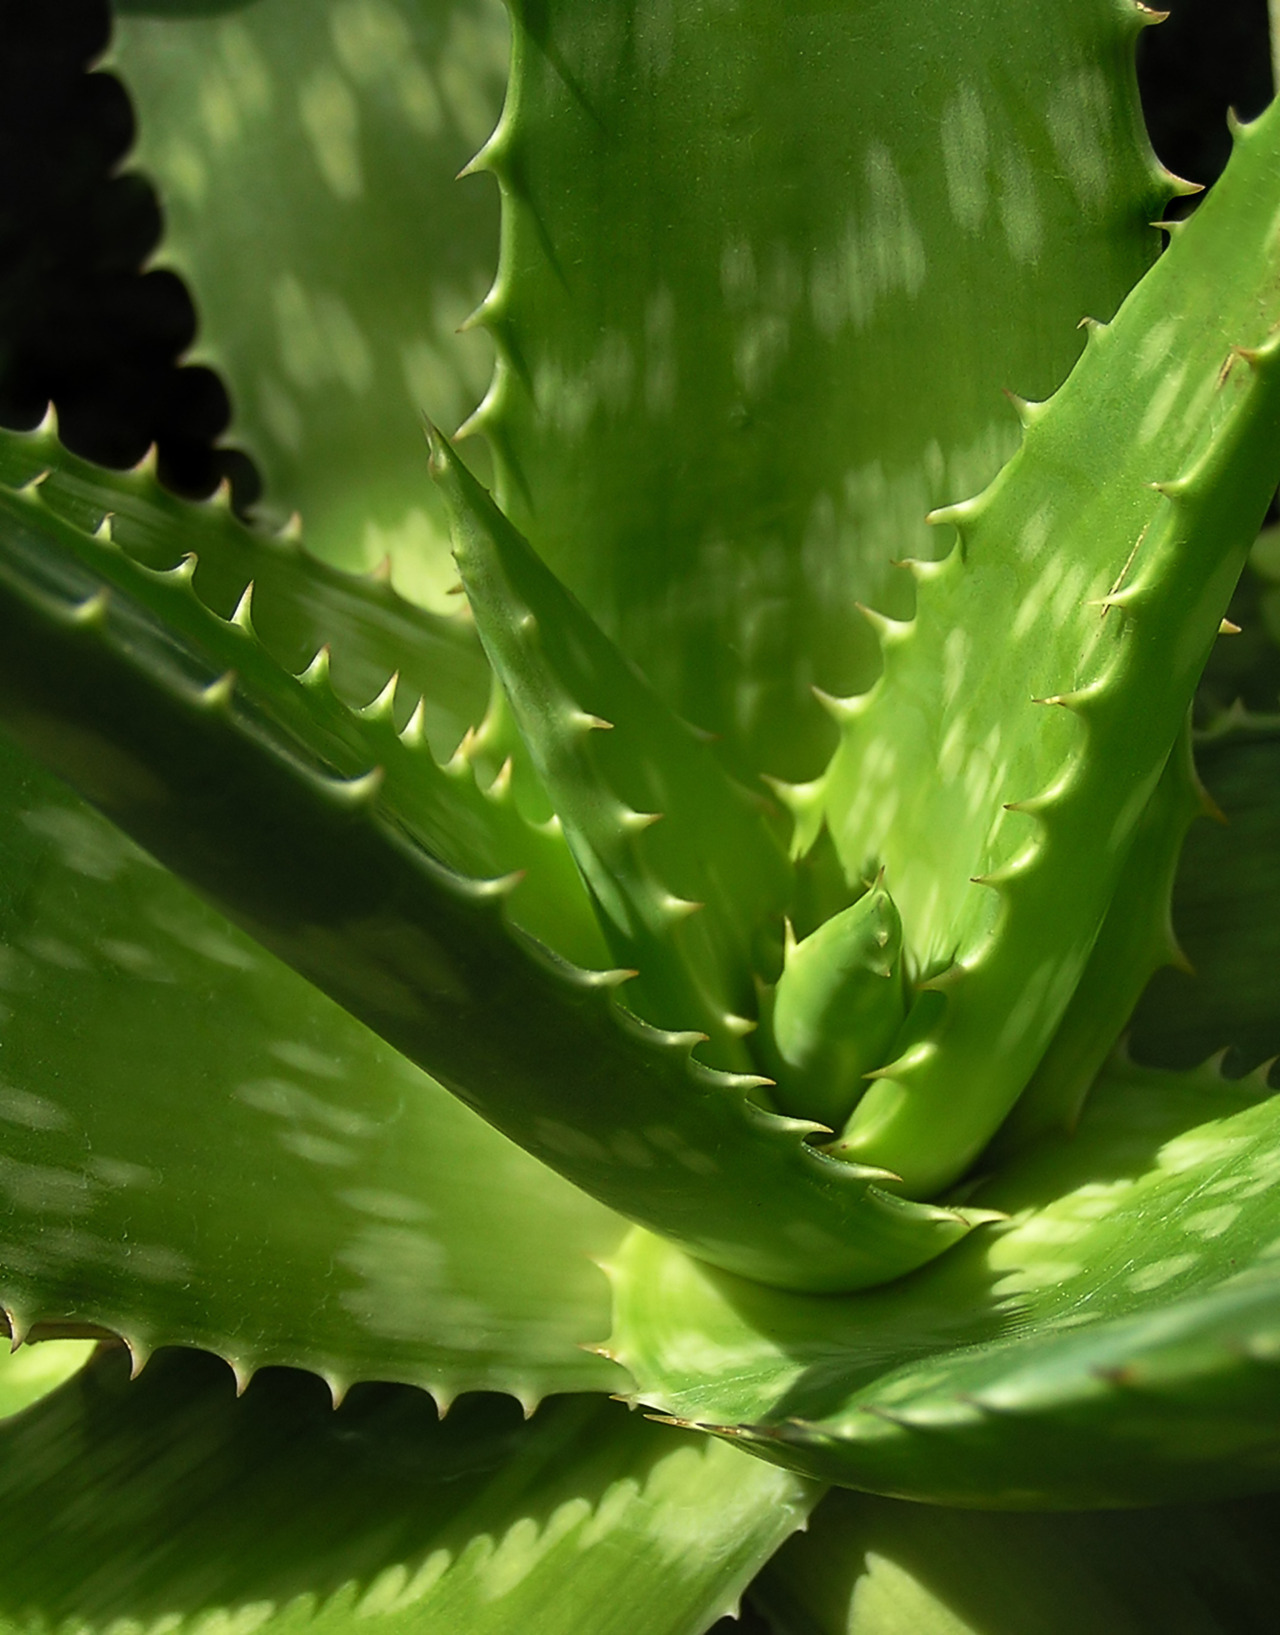 Aloe vera, of course, is known for its medicinal uses. It is a succulent and is thought to have originated in northern Africa. It retains a large amount of water in its tissue, and that moisture is used for various folk remedies.